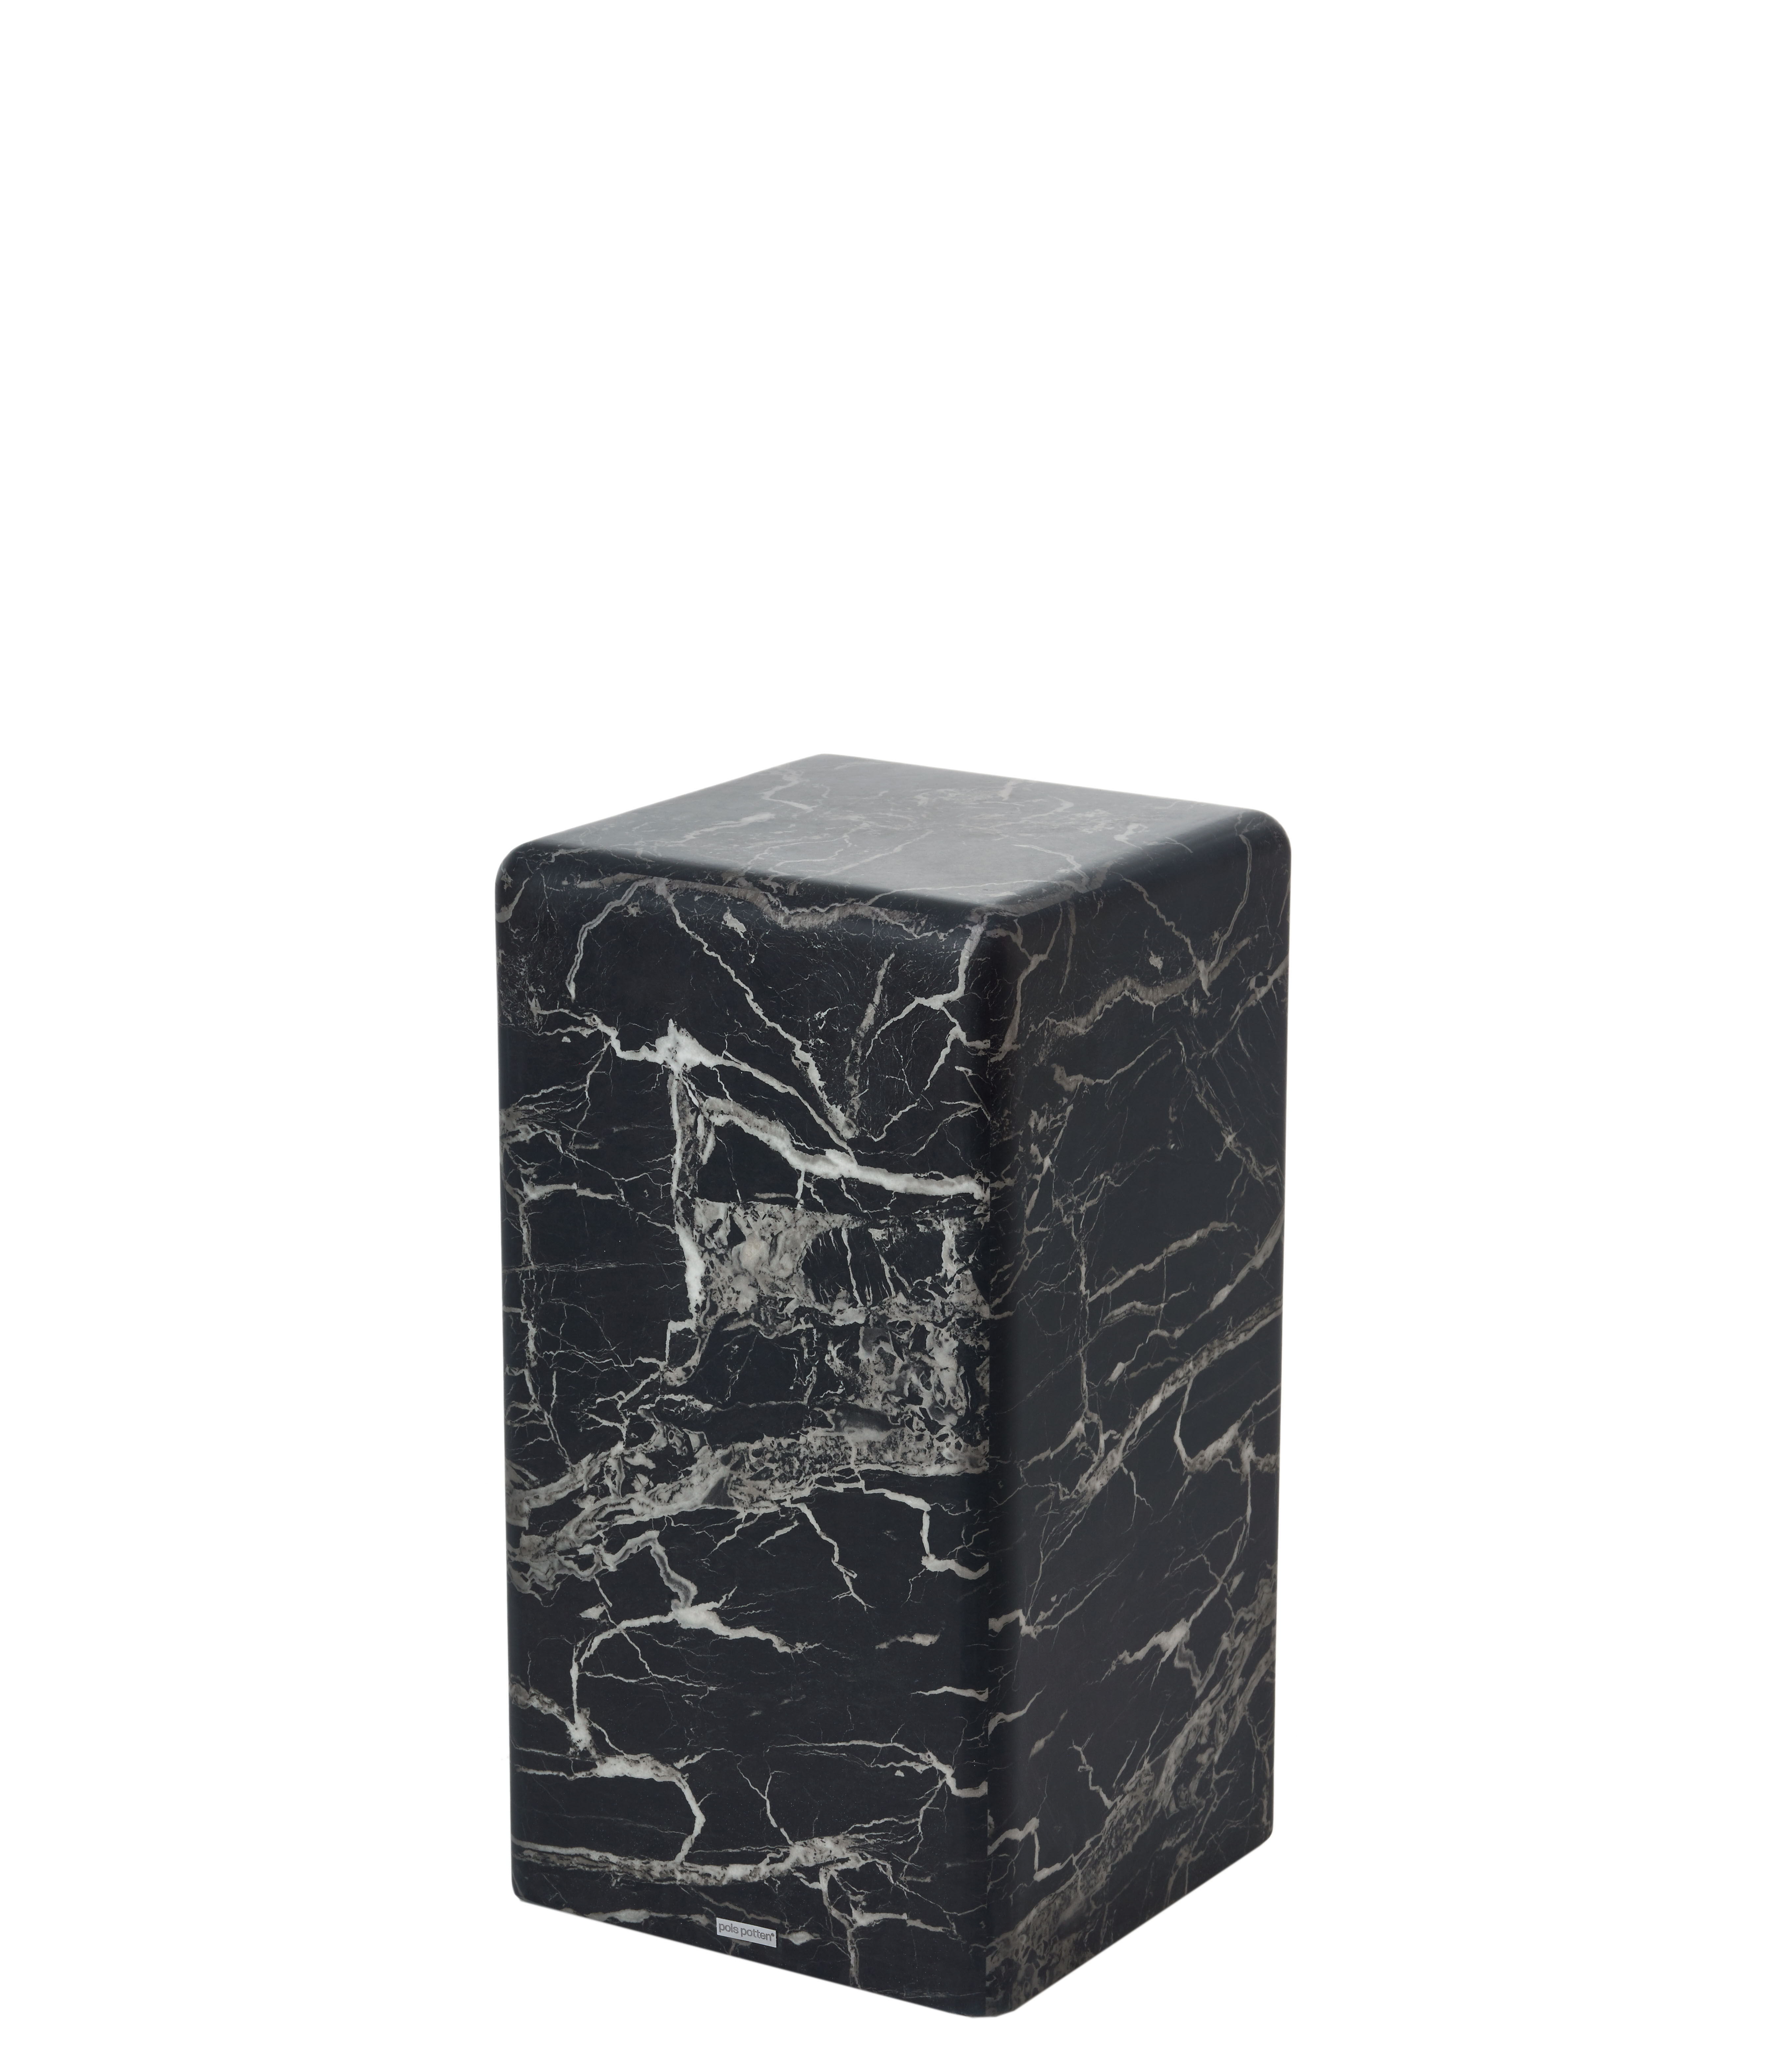 Mobilier - Tables basses - Table d'appoint Marble look Small / H 61 cm - Effet marbre - Pols Potten - Noir - MDF, Résine